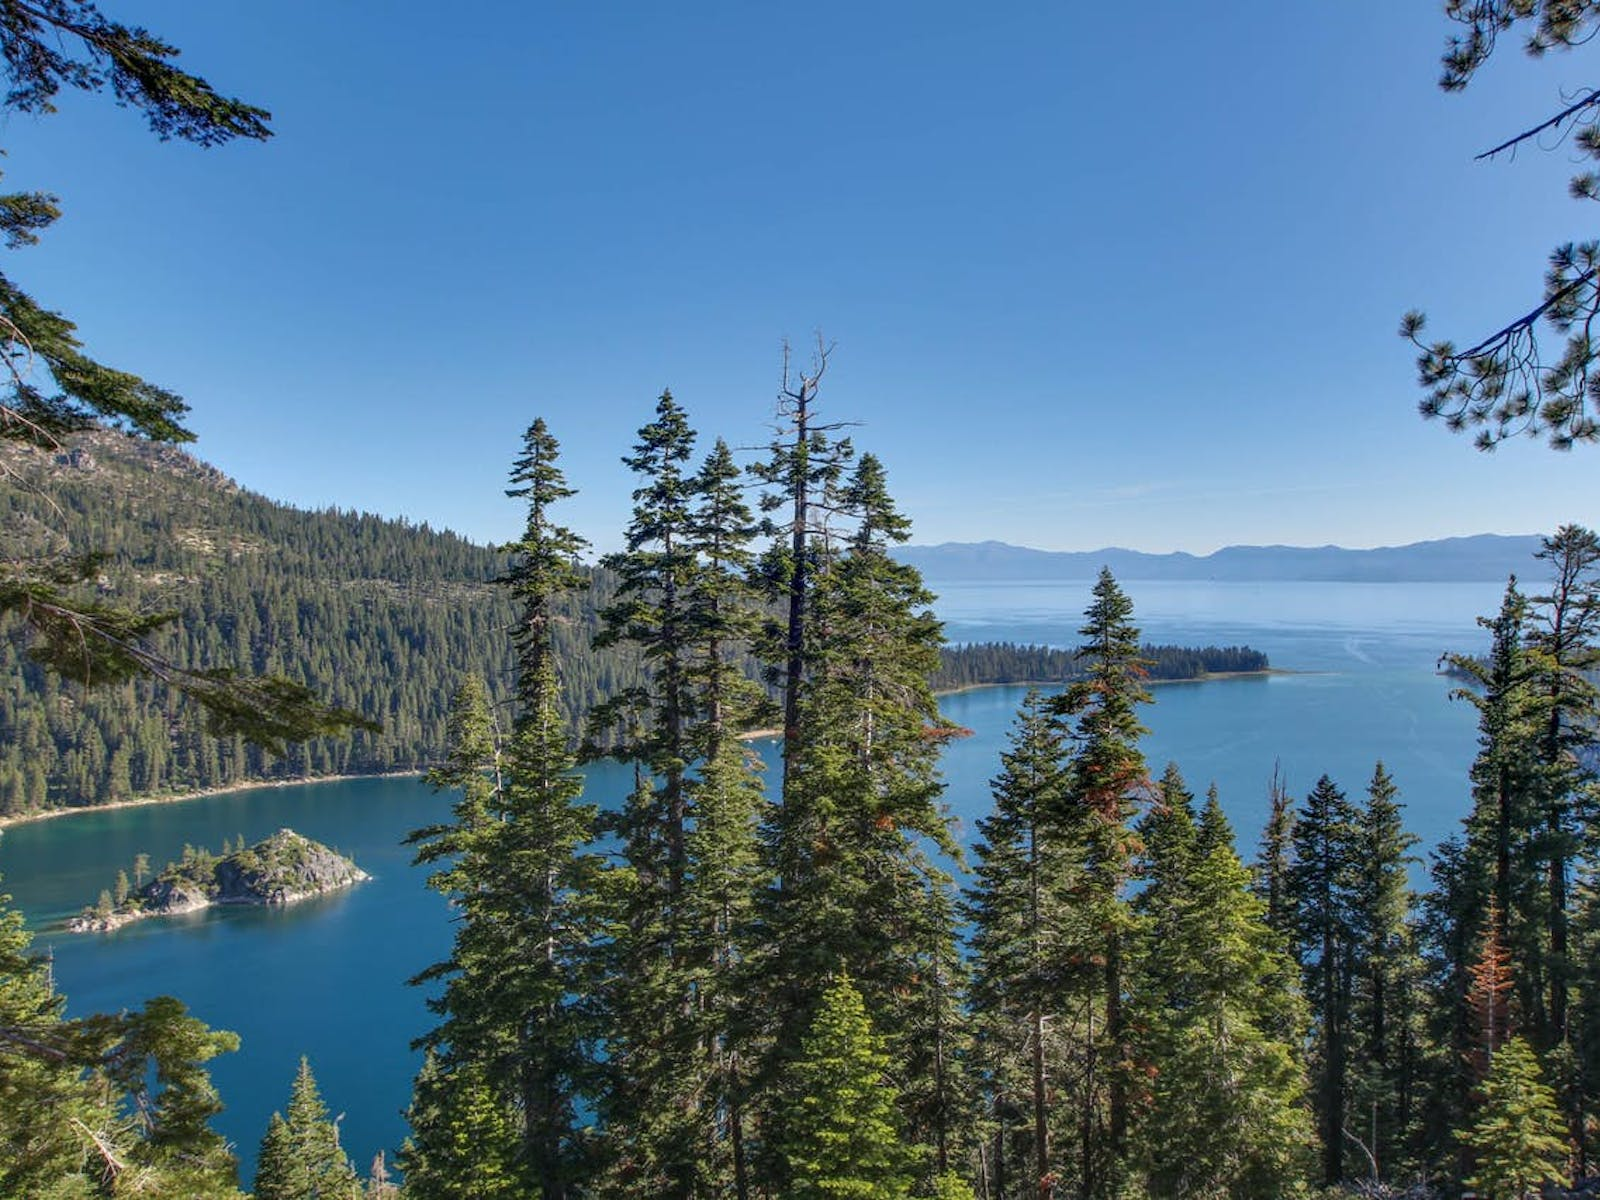 south lake tahoe with blue skies and pine trees